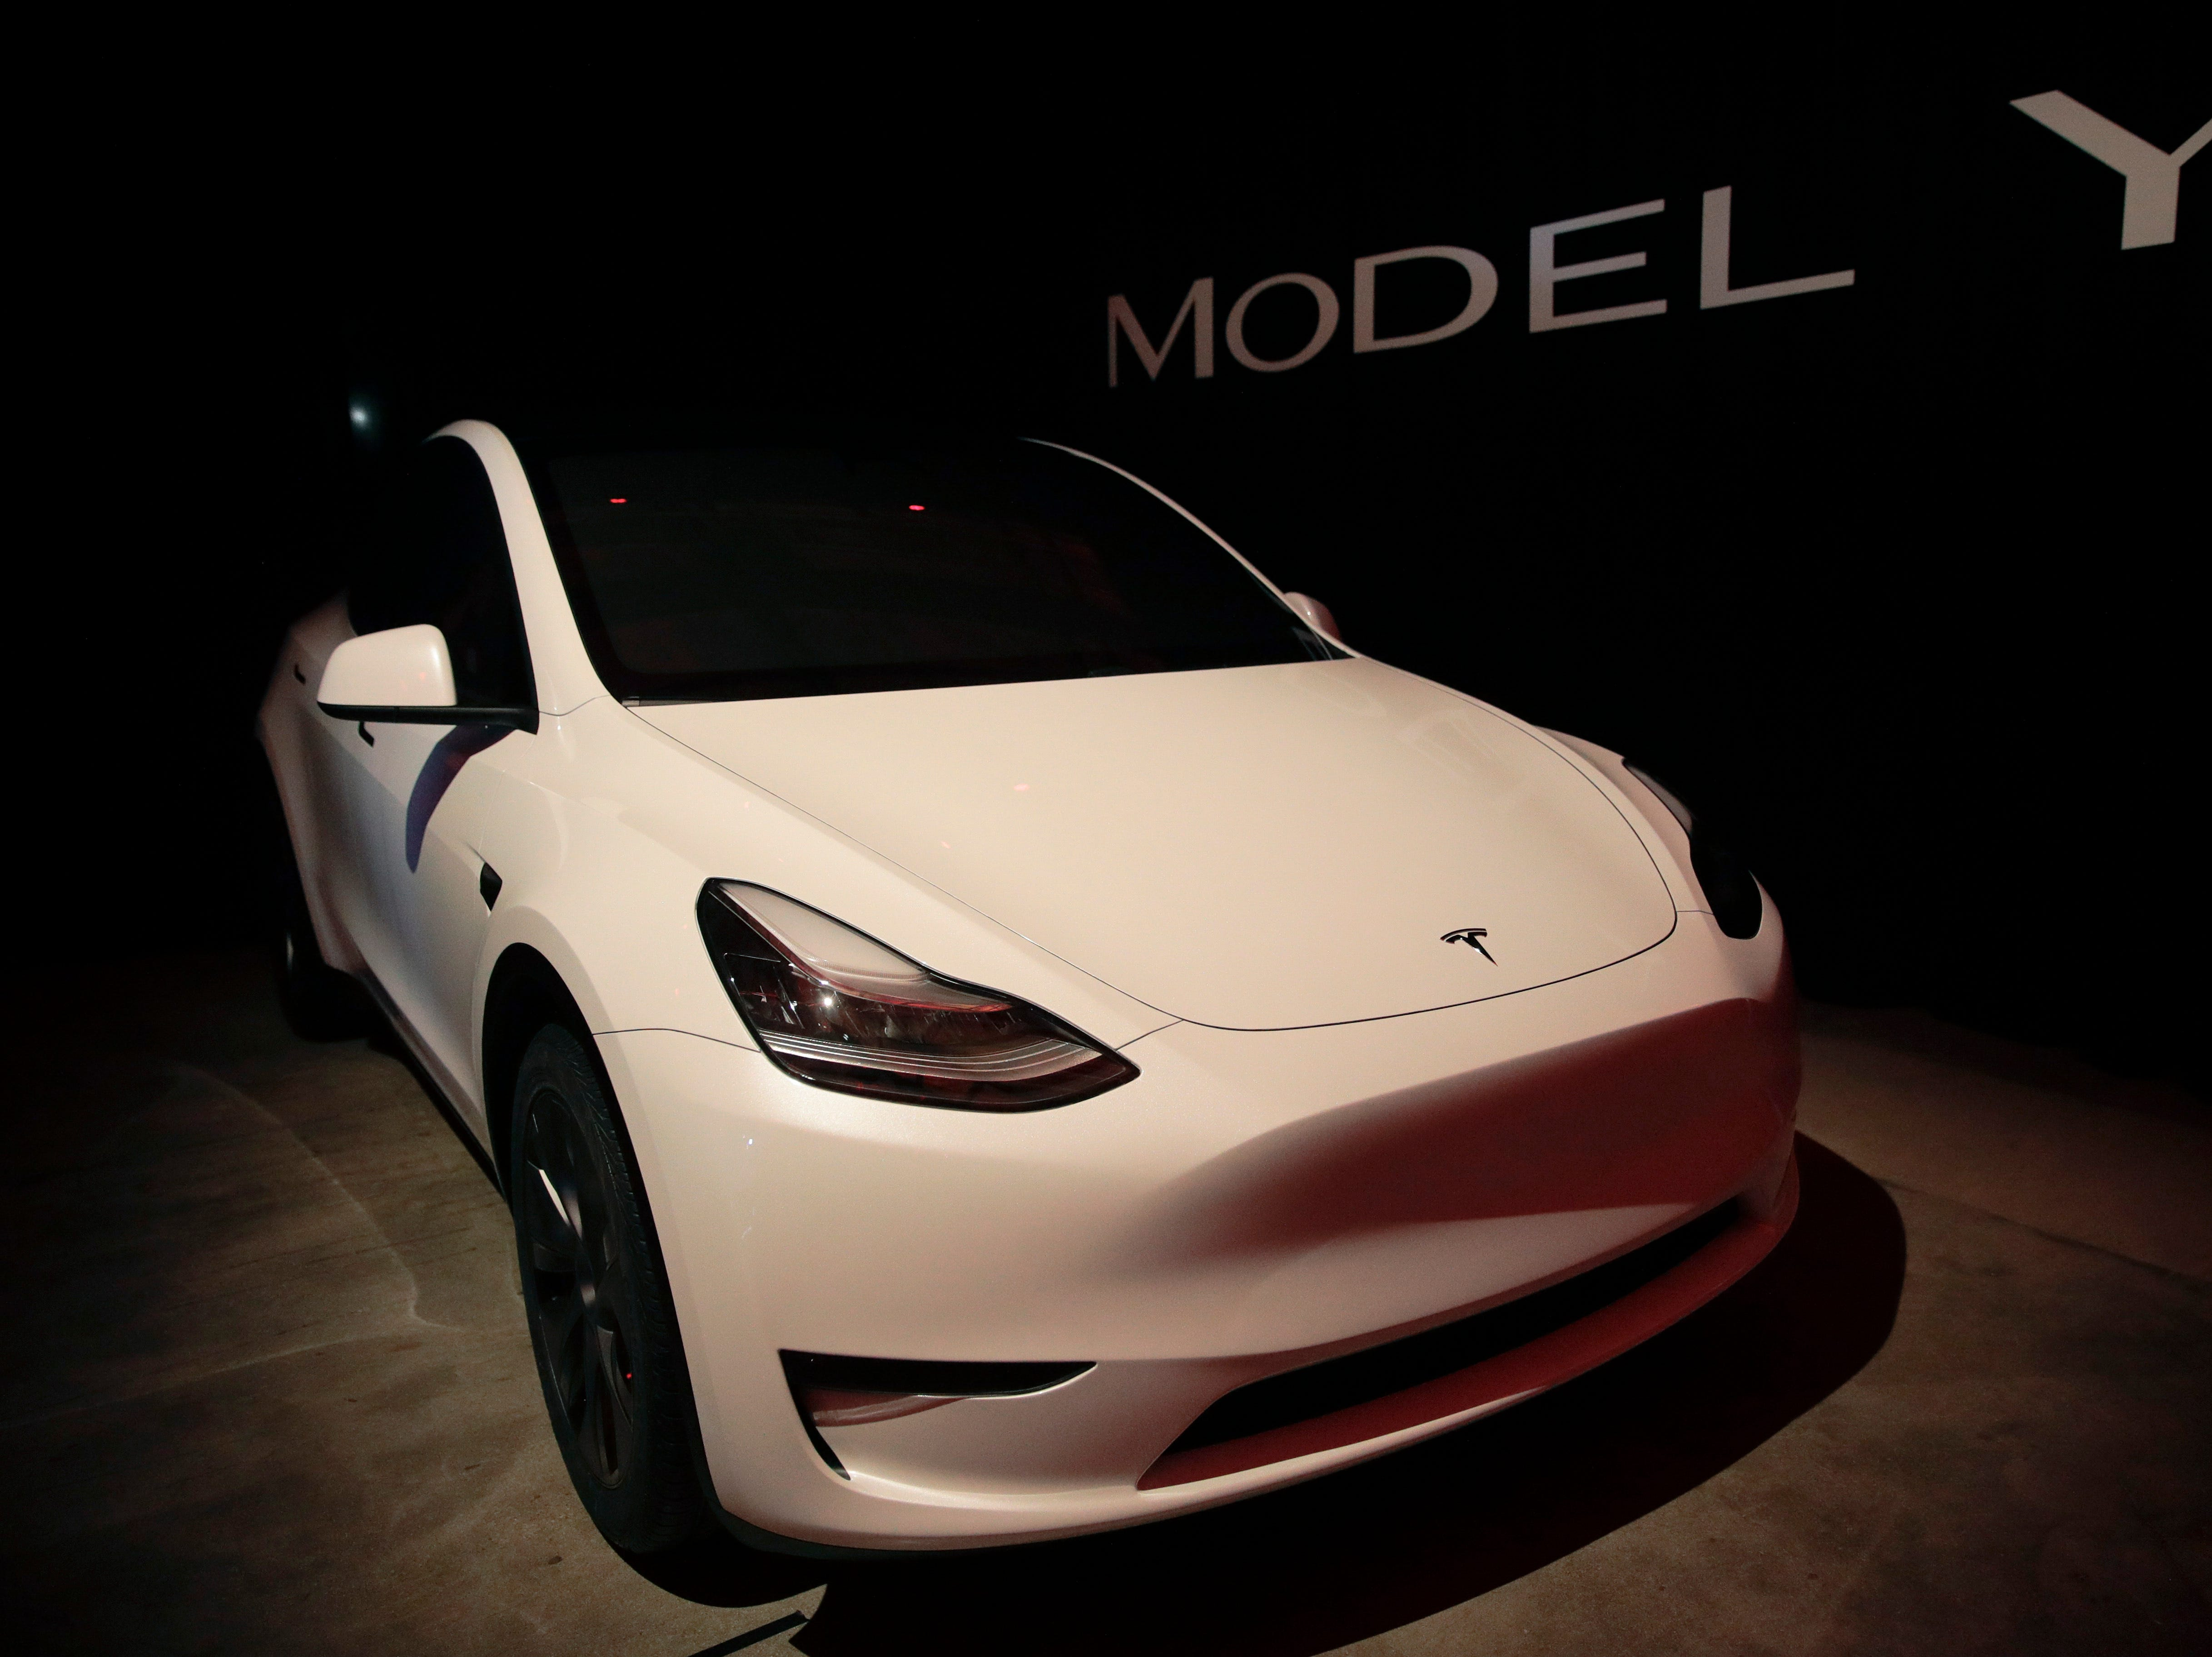 Tesla's Model Y is displayed at Tesla's design studio Thursday, March 14, 2019, in Hawthorne, Calif. The Model Y may be Tesla's most important product yet as it attempts to expand into the mainstream and generate enough cash to repay massive debts that threaten to topple the Palo Alto, California, company. (AP Photo/Jae C. Hong)